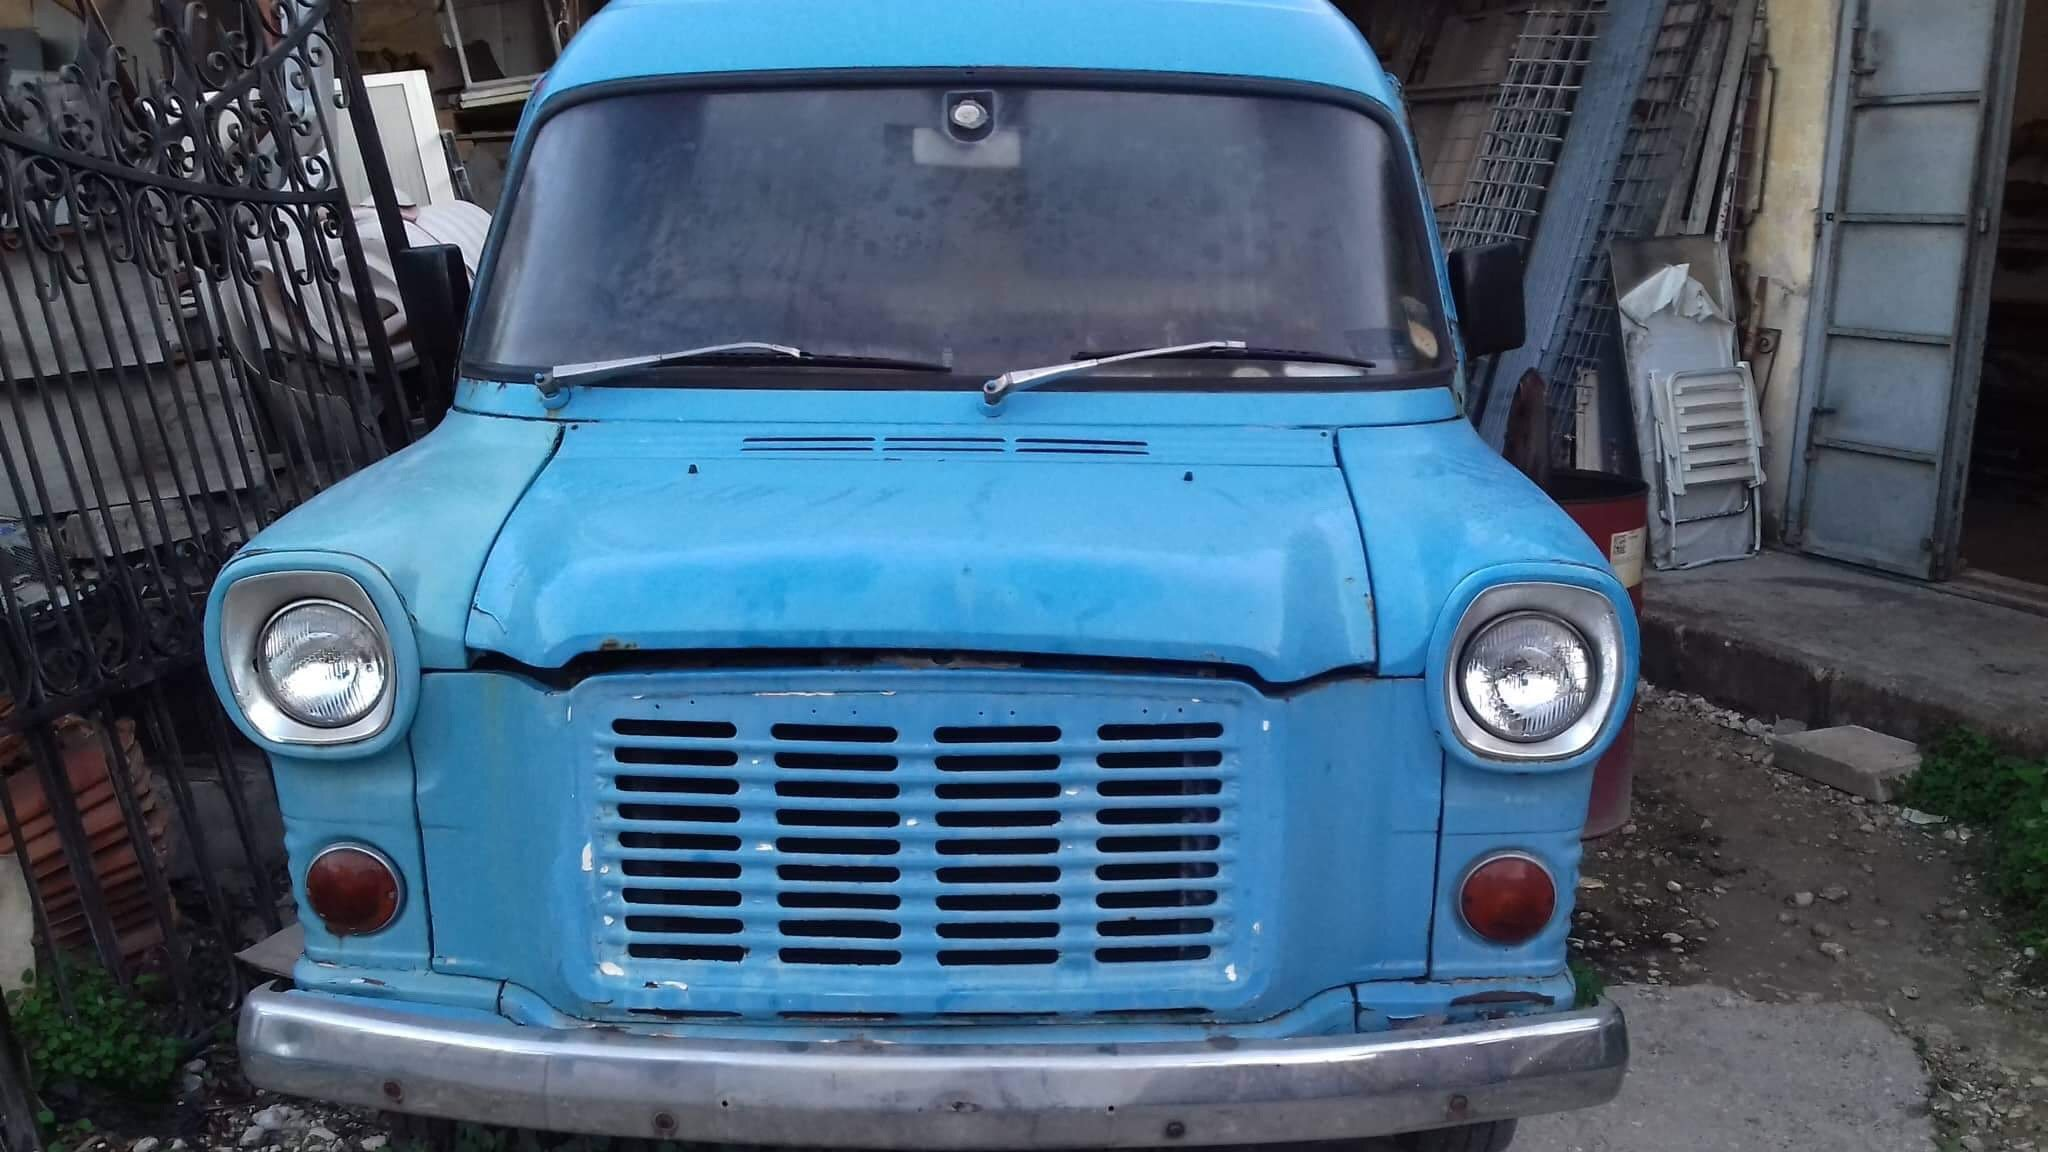 FORD TRANSIT RARE CLASSIC BARN FIND 1972 FORD TRANSIT MK1 PI For Sale (picture 3 of 5)